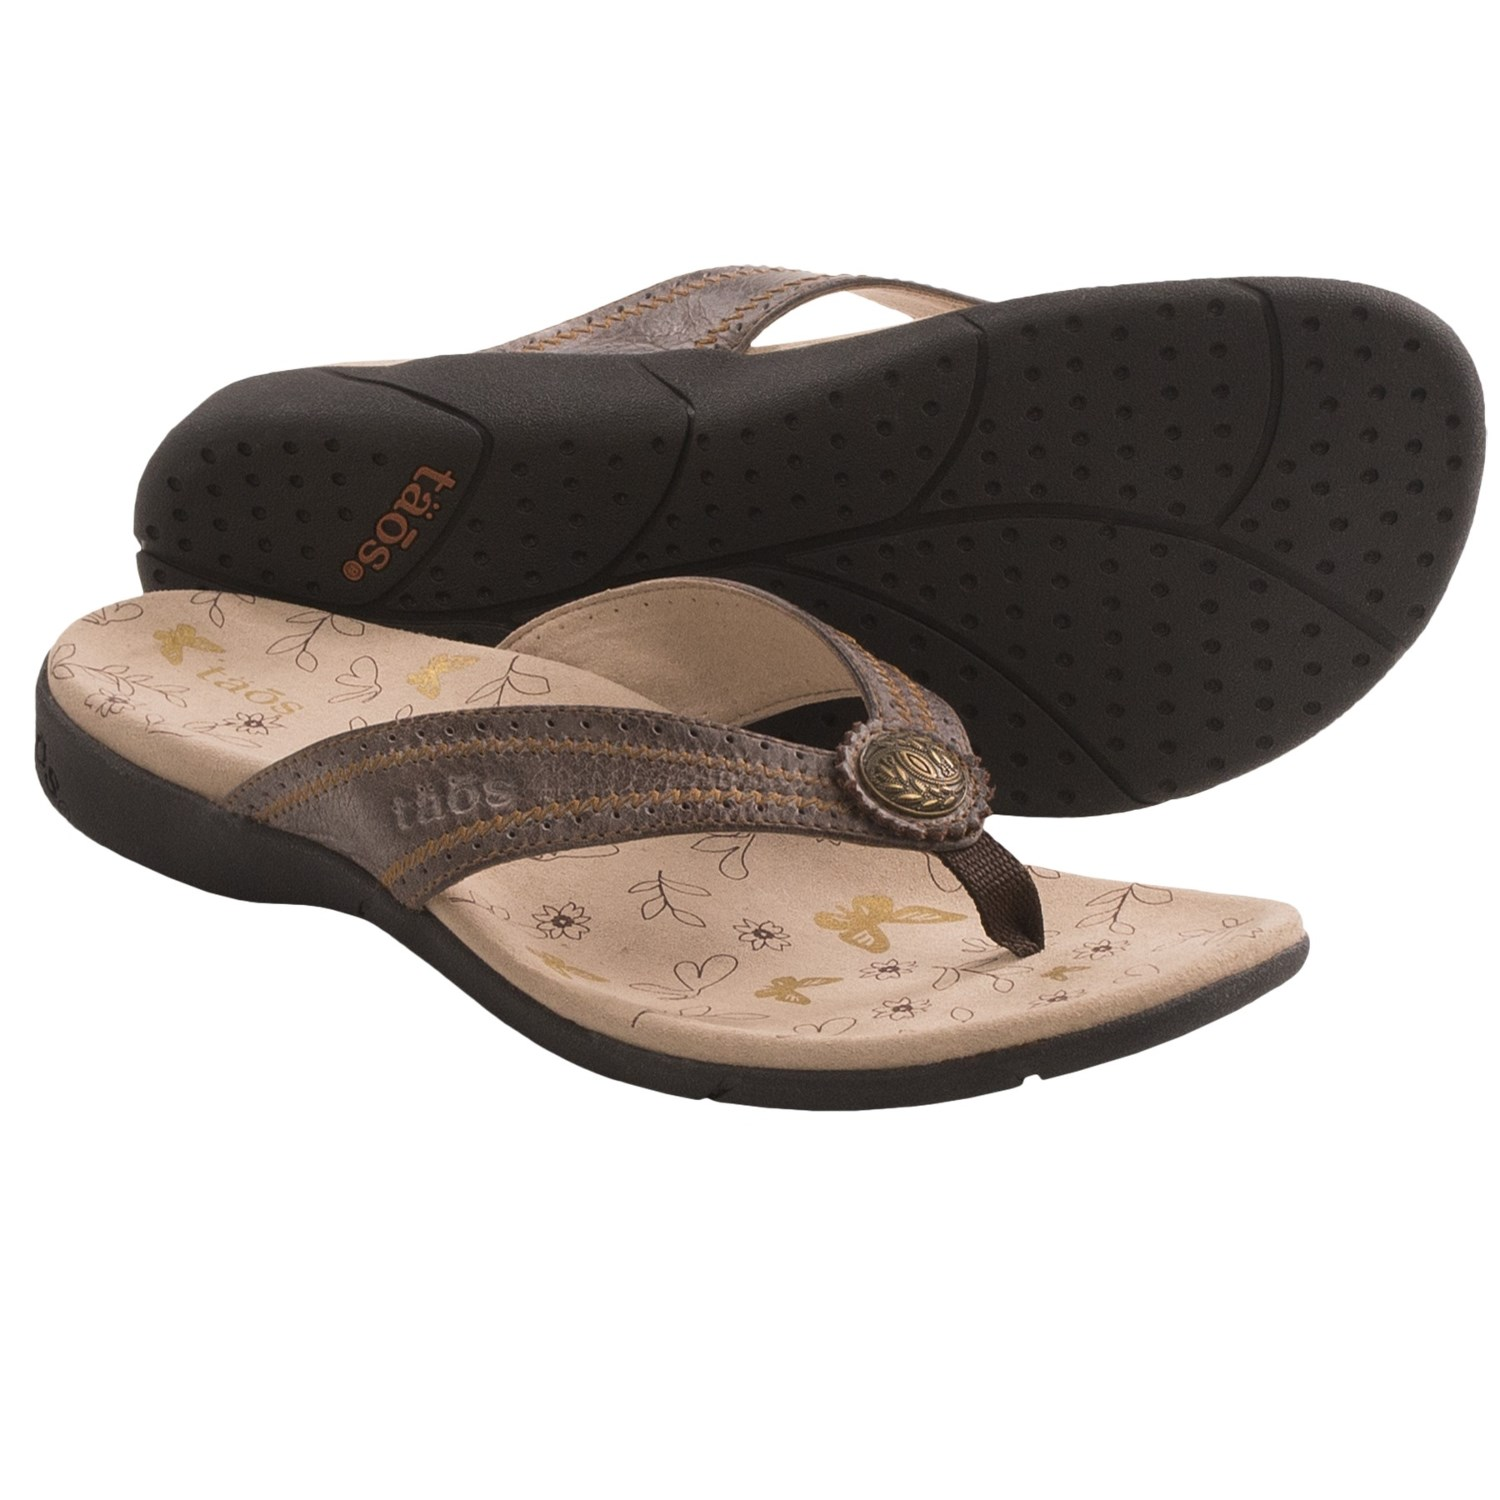 Taos Trulie | Women's - Black - FREE SHIPPING at OnlineShoes.com